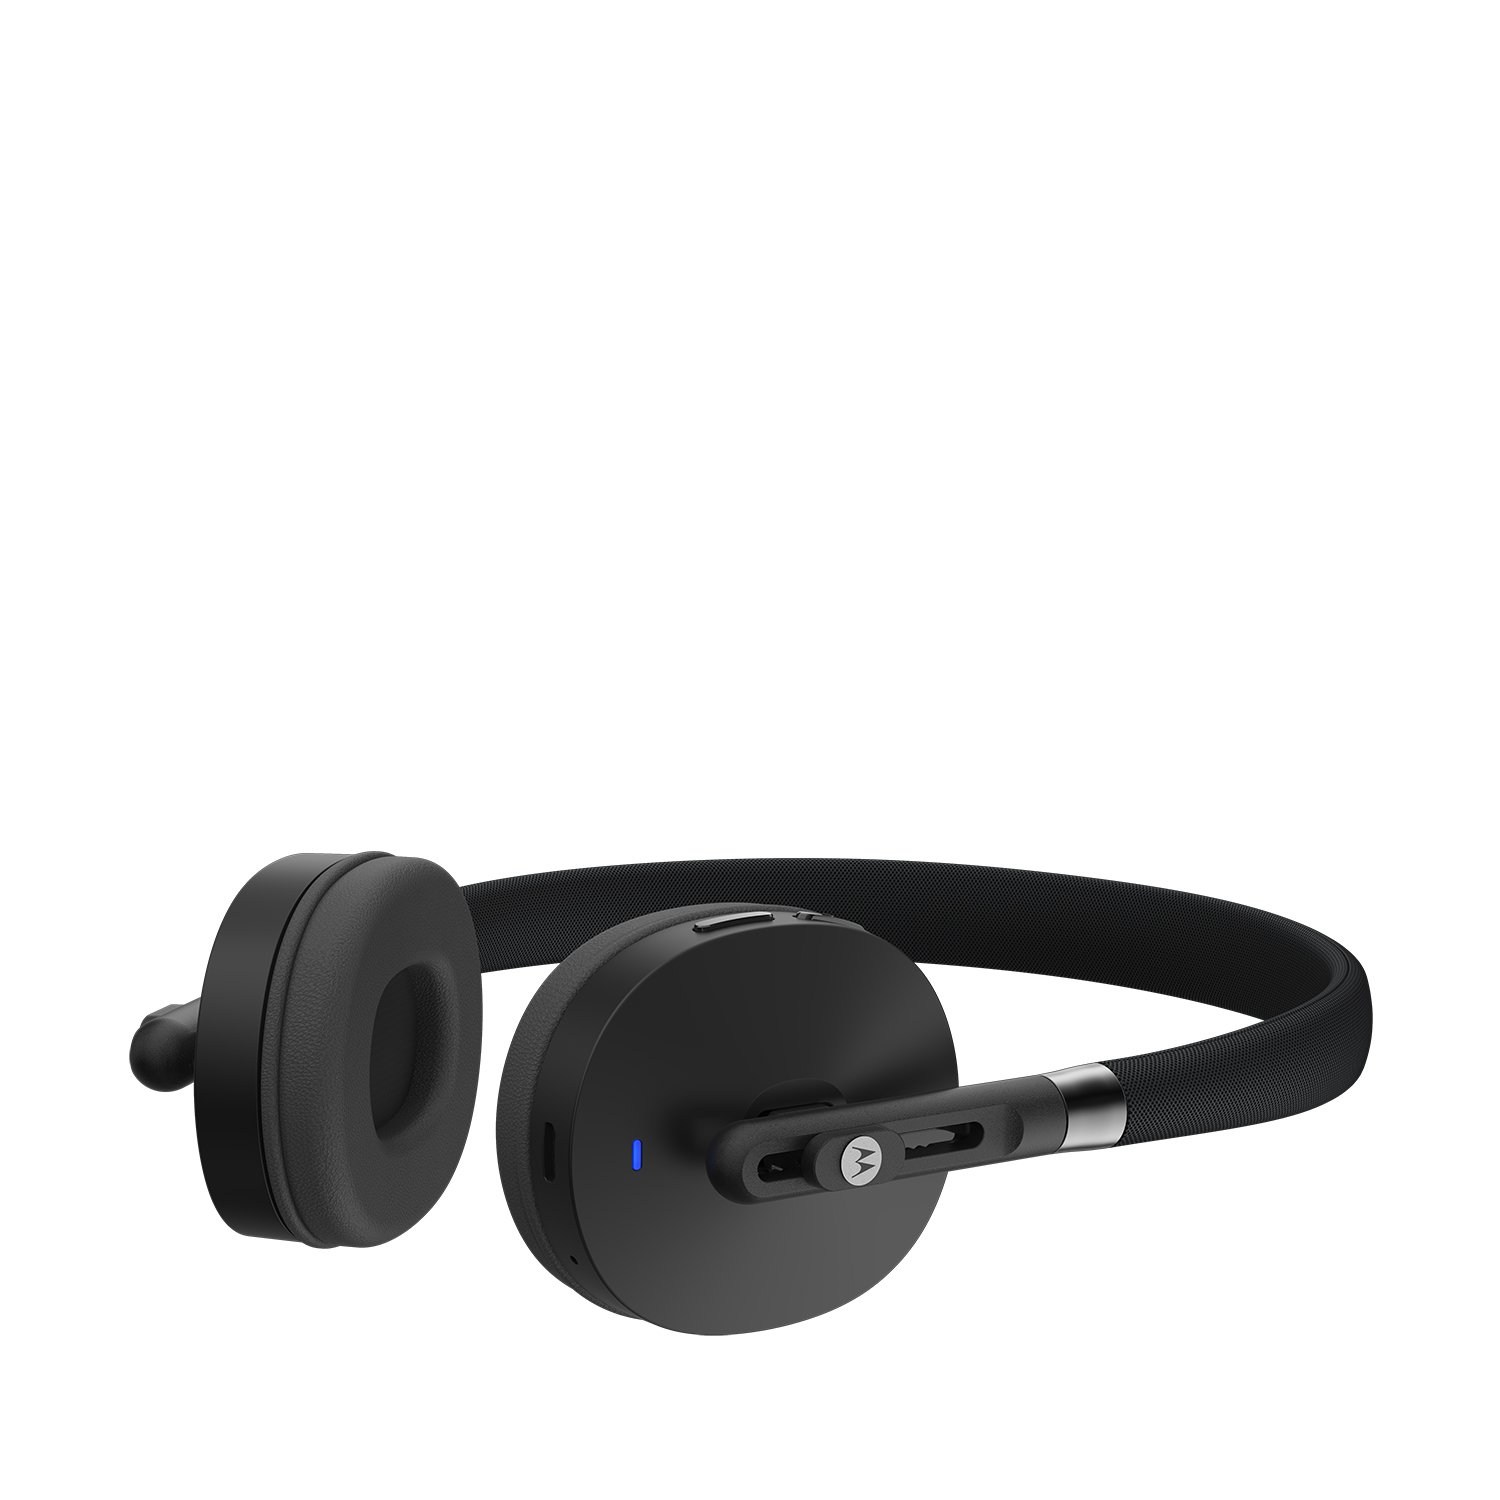 Amazon: Motorola S505 Moto Pulse Wireless On-Ear Headphone (Black-Chalk) @ Rs.1,146/- (84% OFF)